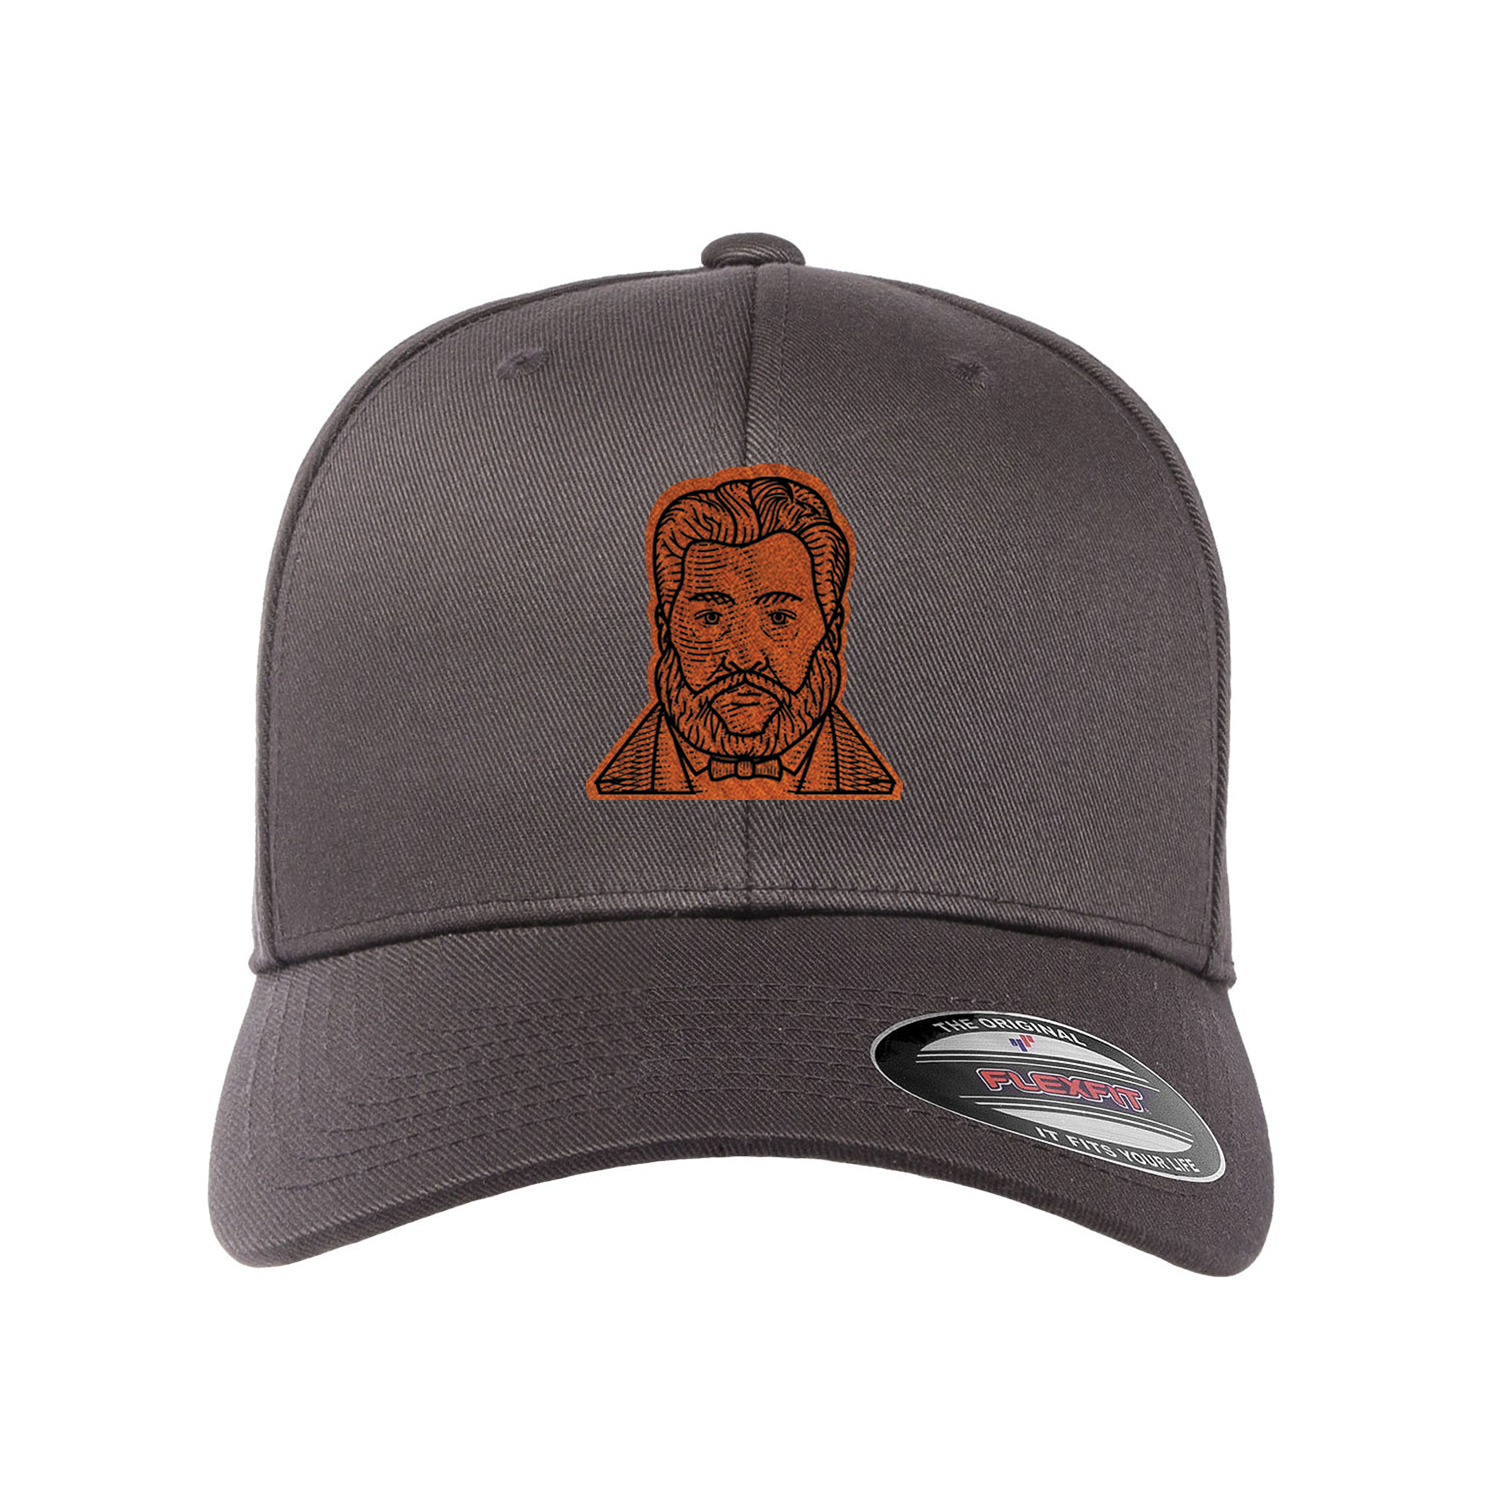 Charles Spurgeon Etched Patch Fitted Hat